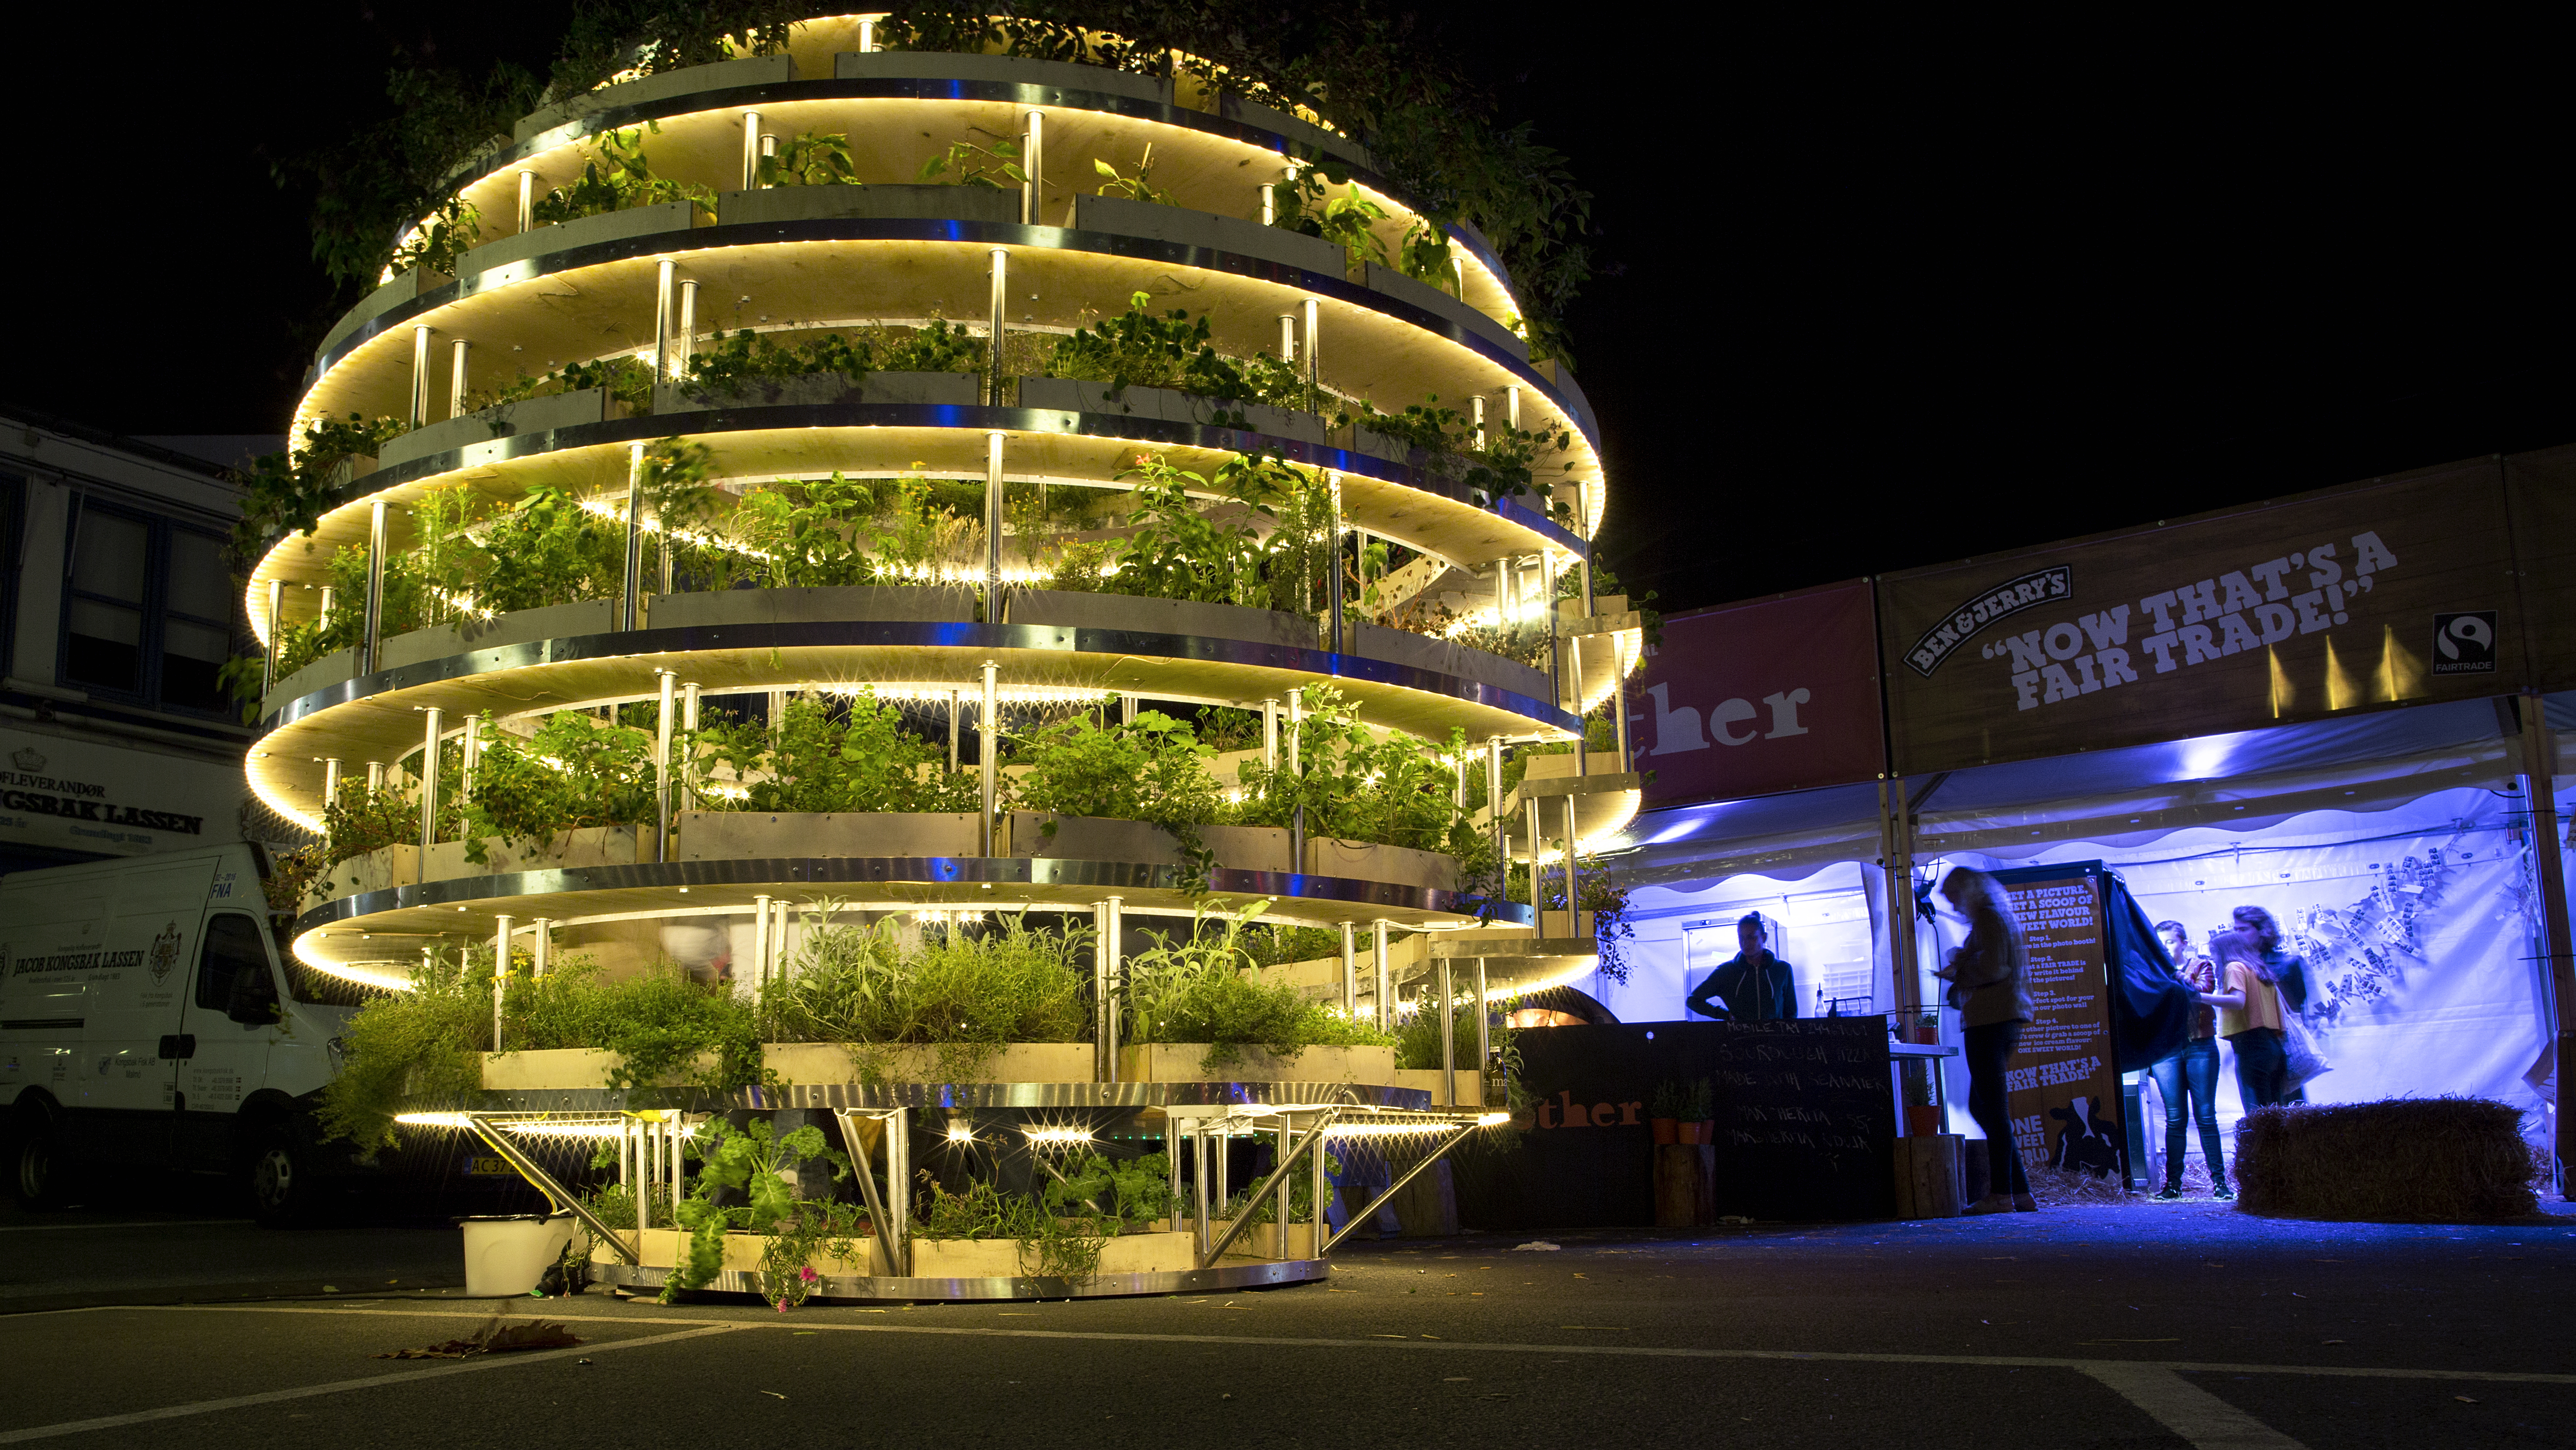 IKEA releases plans for a spherical garden you can build with tons